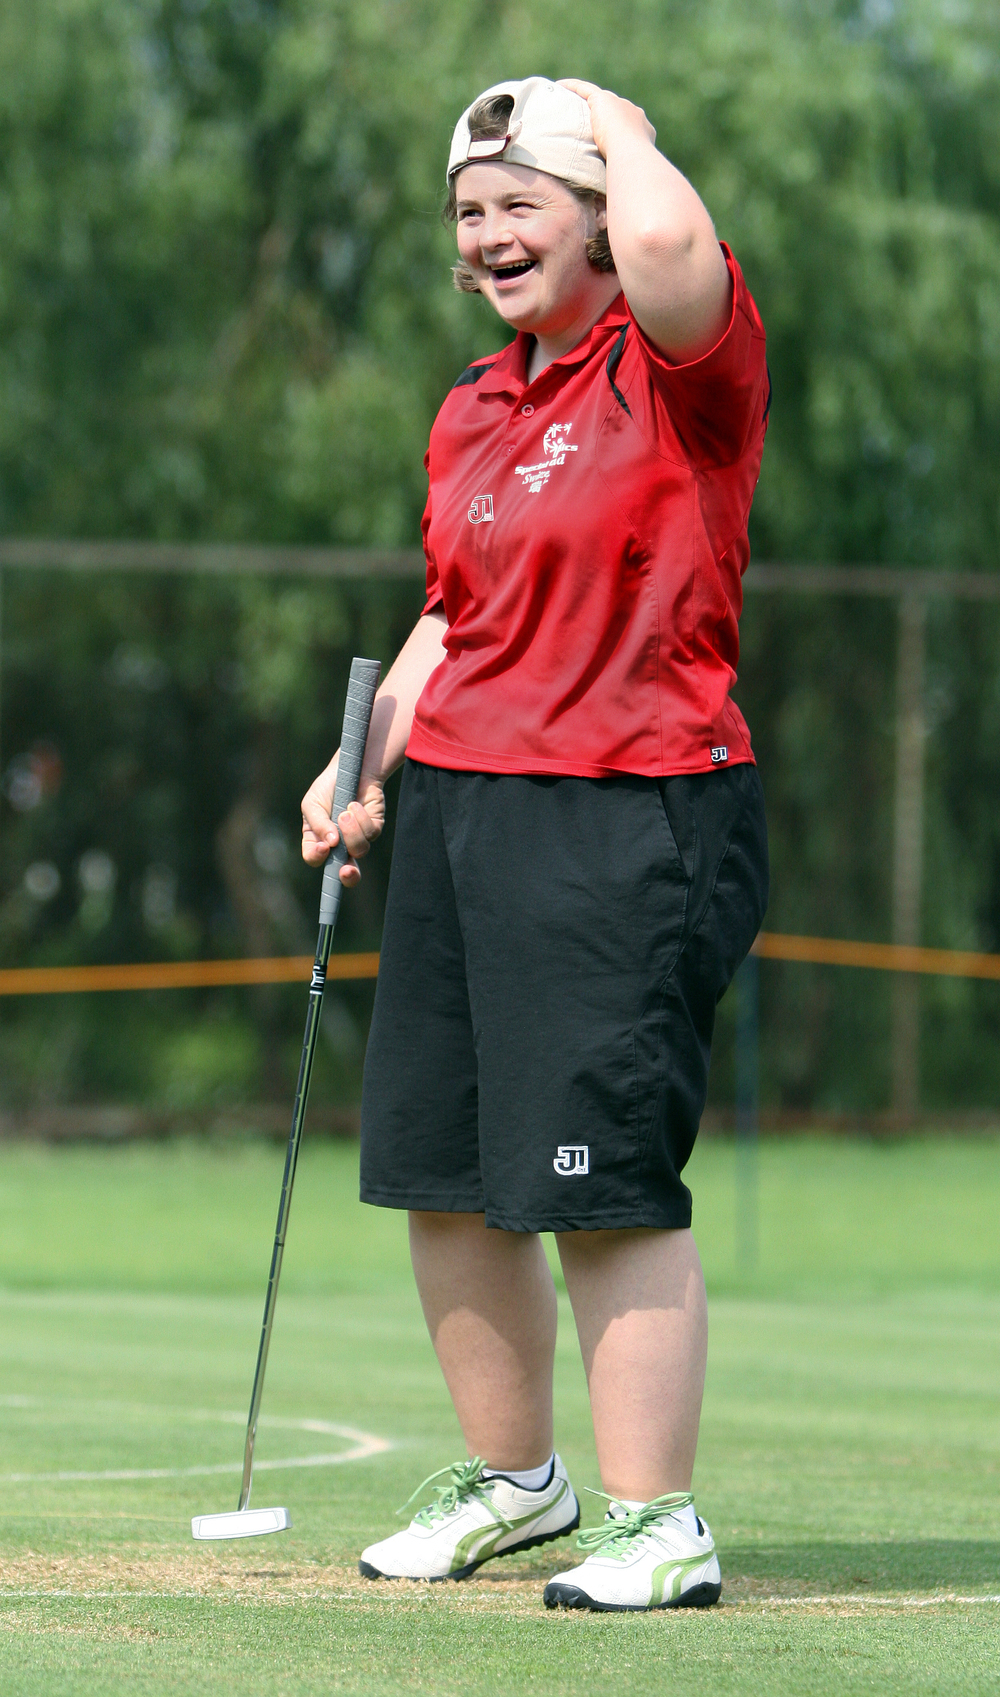 Marie-Claire Courtin of Switzerland celebrates after a good putt during the level 1 competition at Shanghai Tianma Country Golf Course.